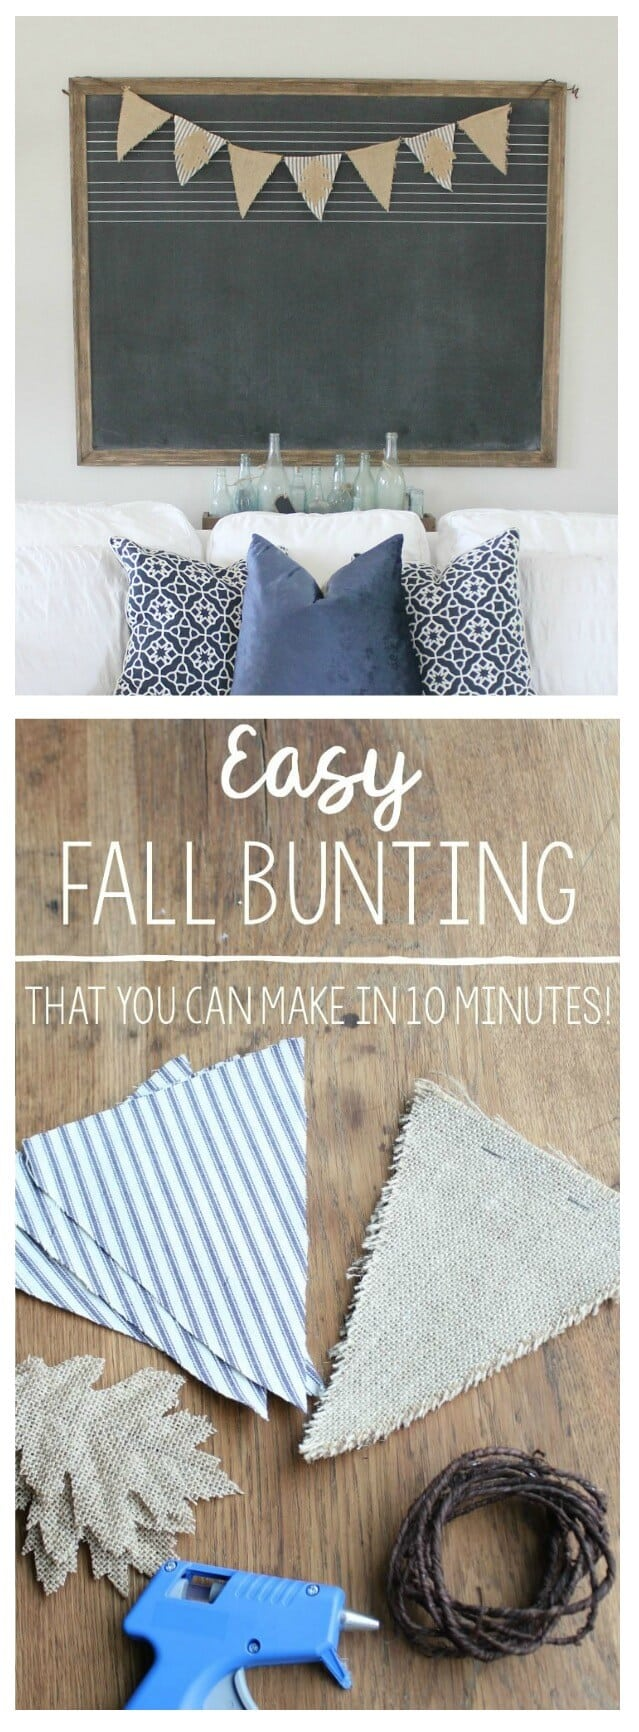 Easy Fall Bunting Tutorial: Looking for quick and easy decor for this fall season? Here's a DIY you can do in just minutes with this Burlap and ticking stripe bunting.